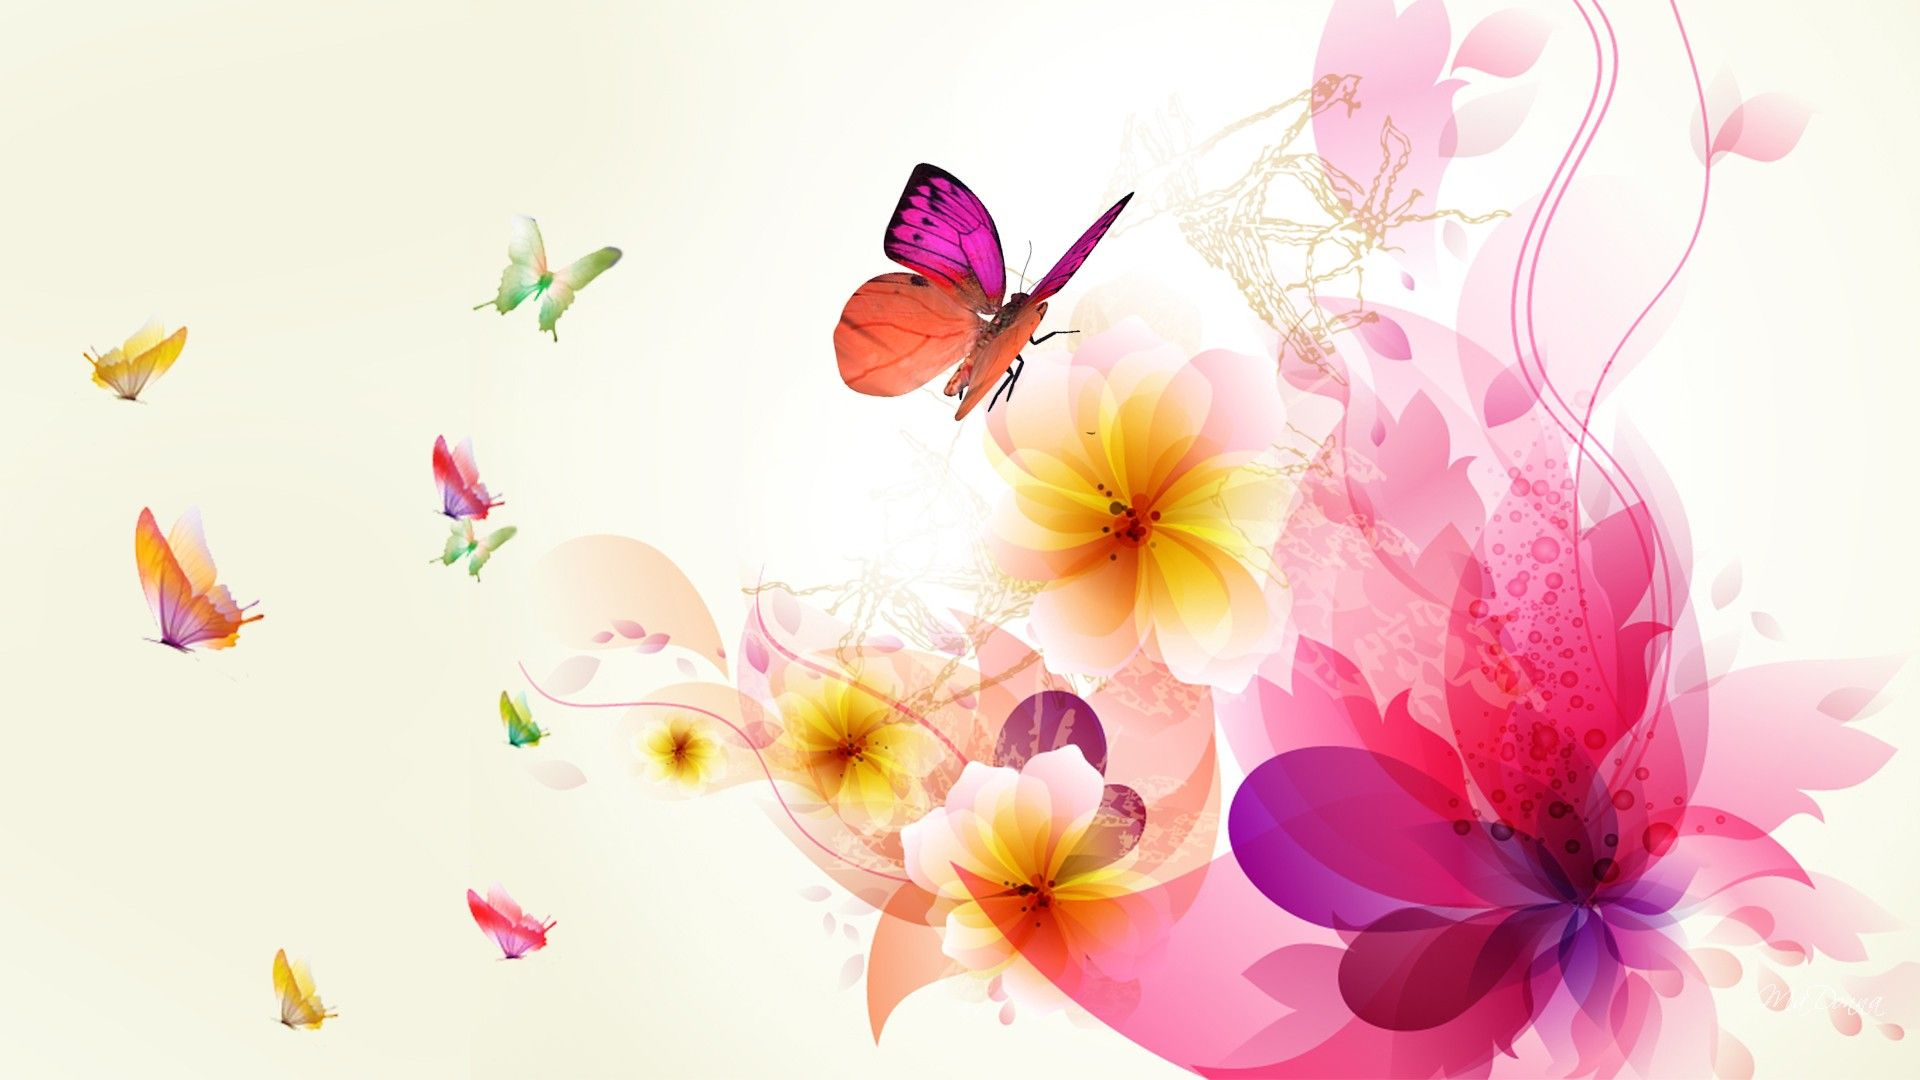 Butterflies And Flowers   Floral Background Hd, Abstract, Flower Wallpaper